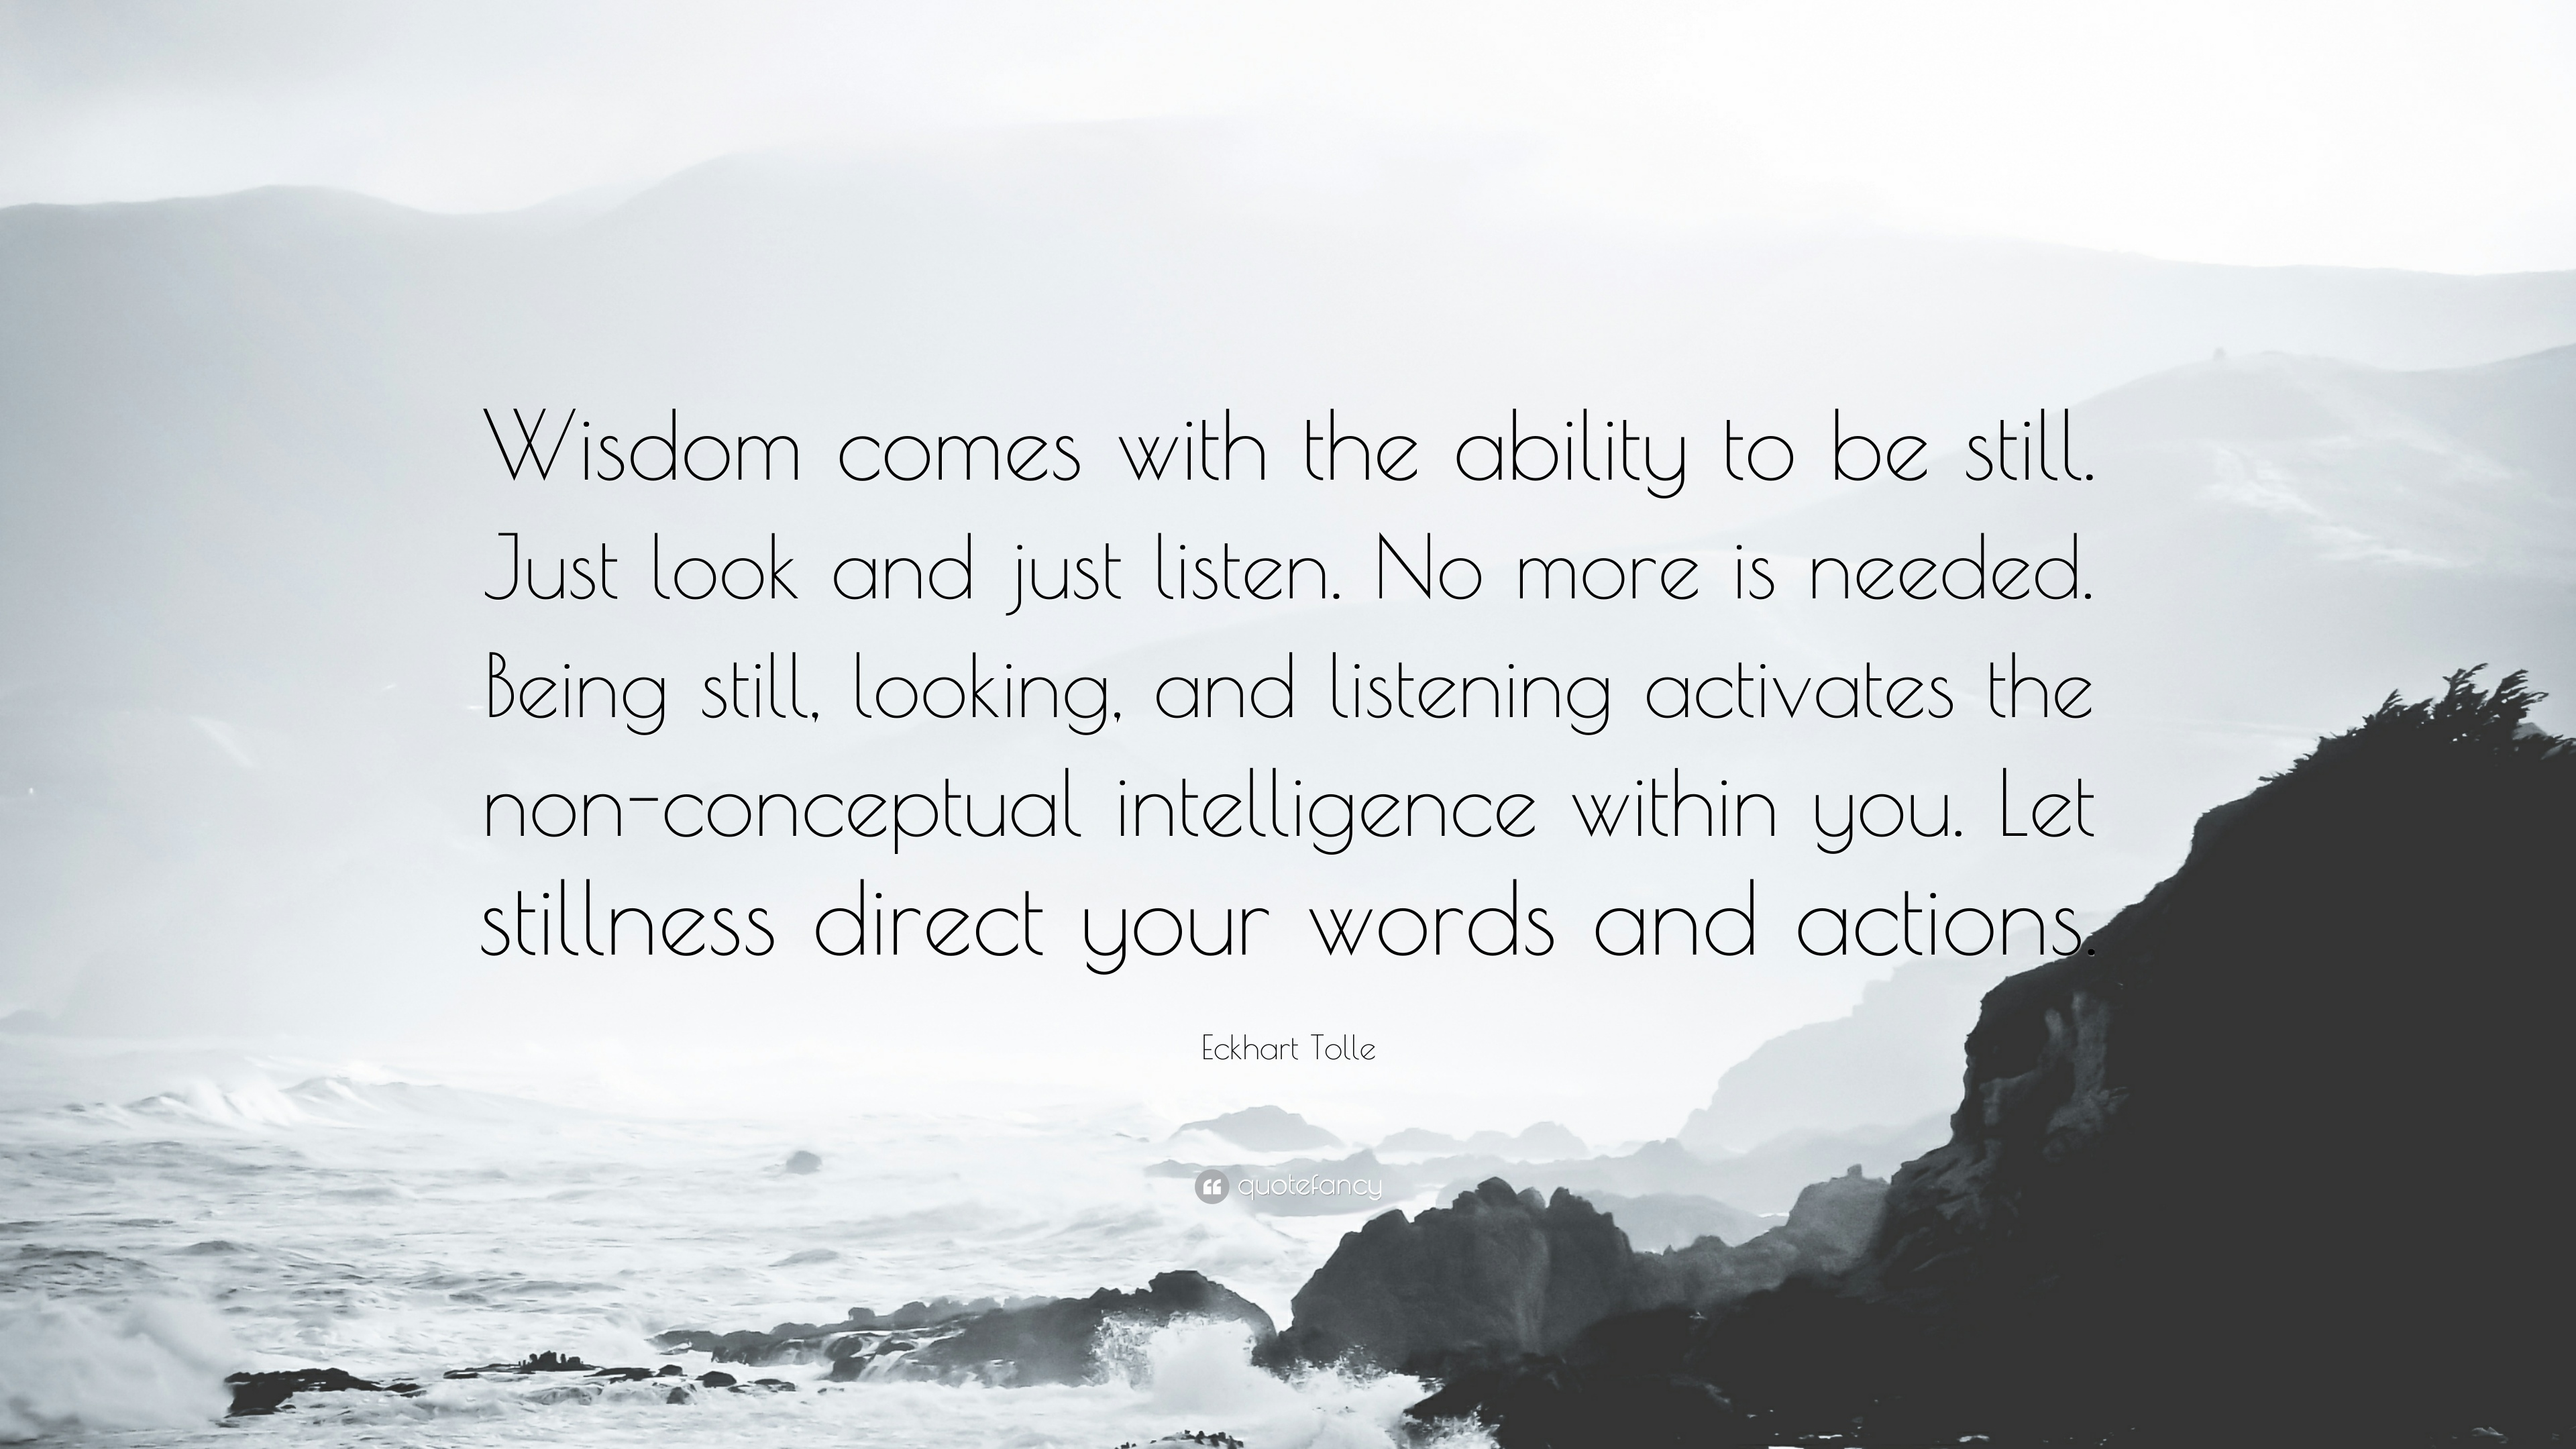 Eckhart Tolle Quote Wisdom Comes With The Ability To Be Still